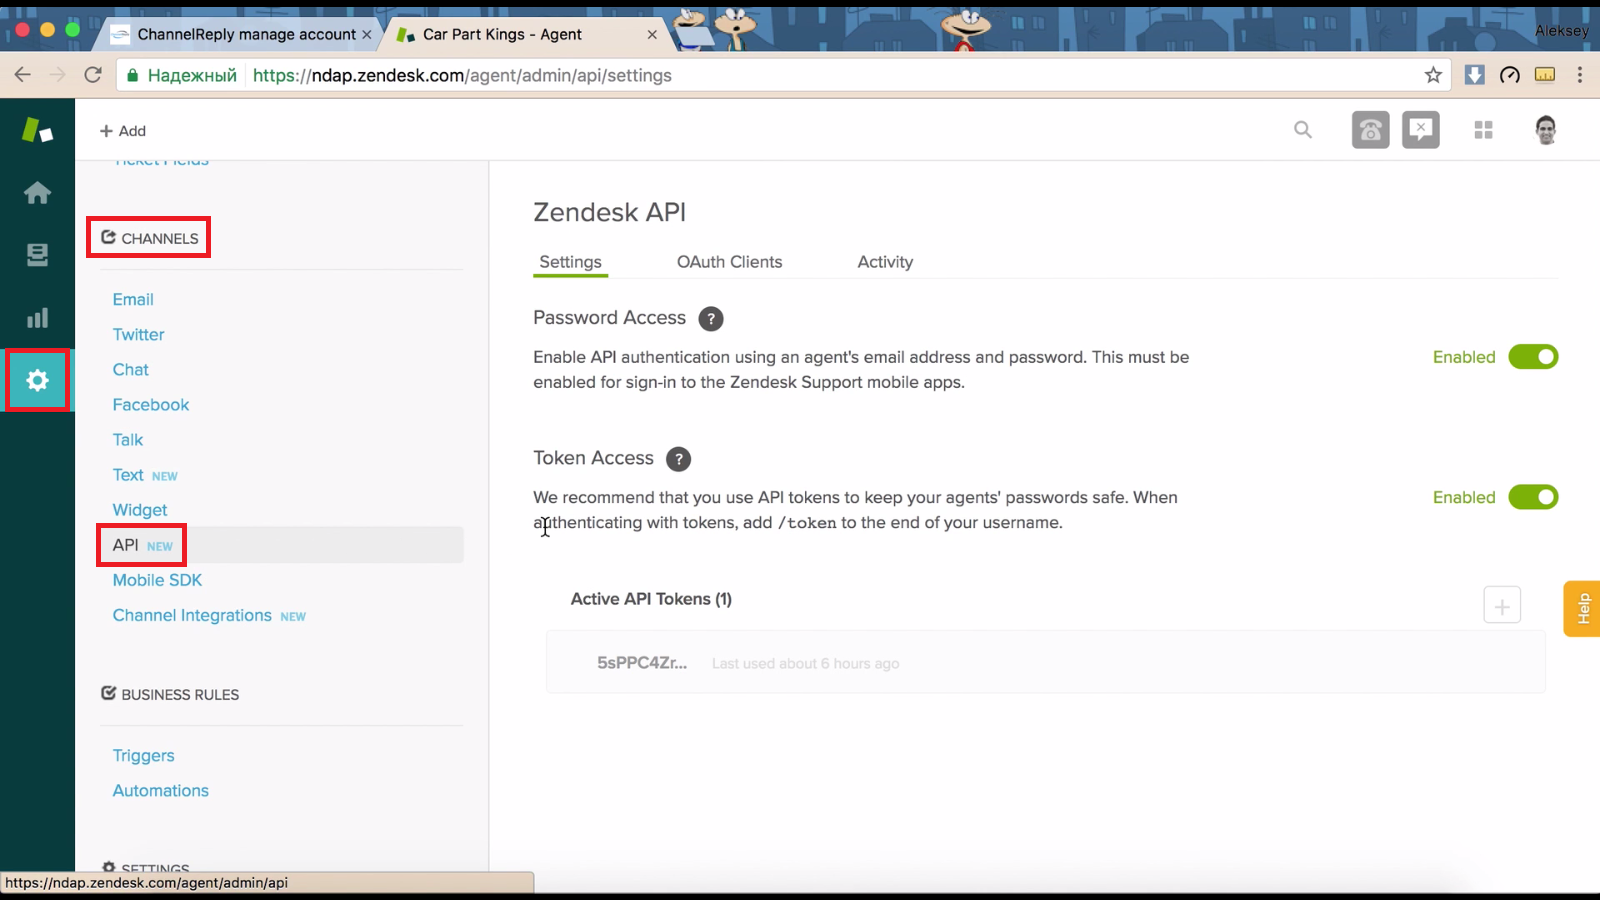 Zendesk API Management